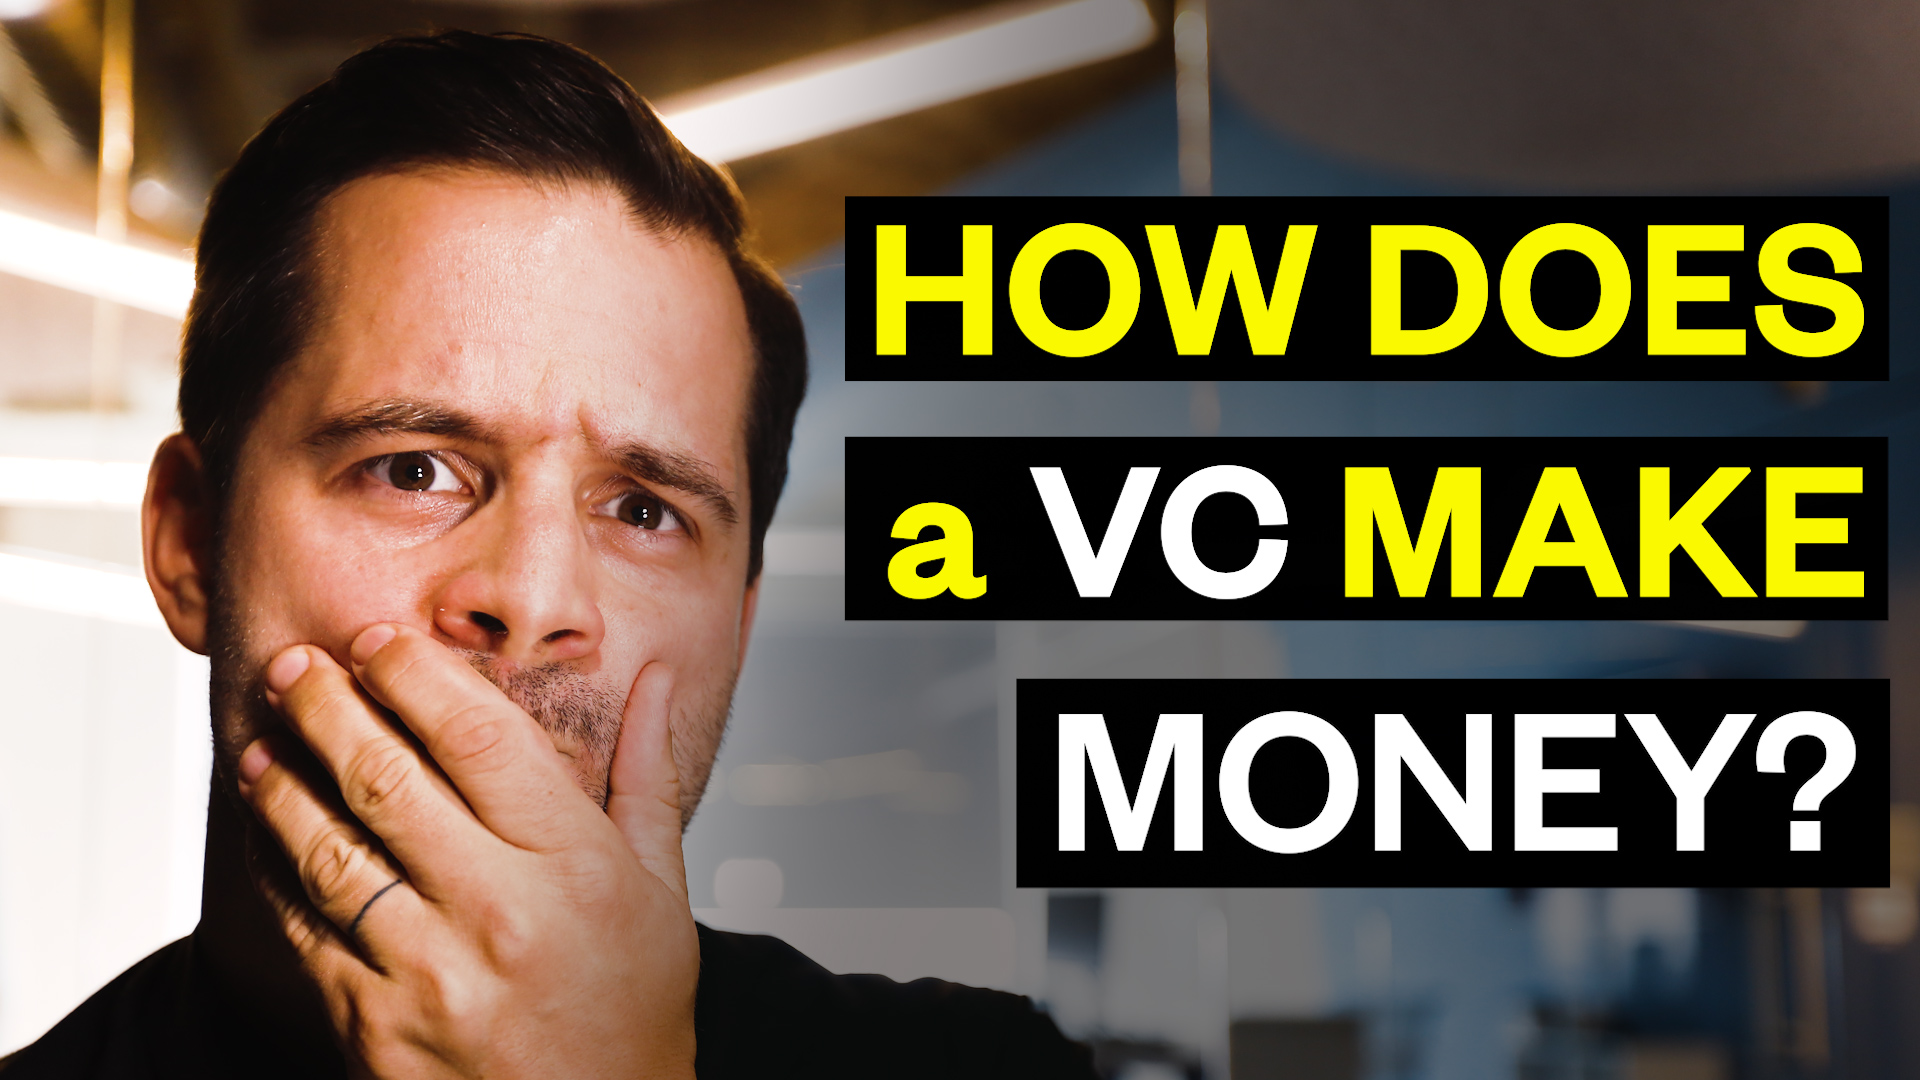 How Does a Venture Capitalist Make Money?